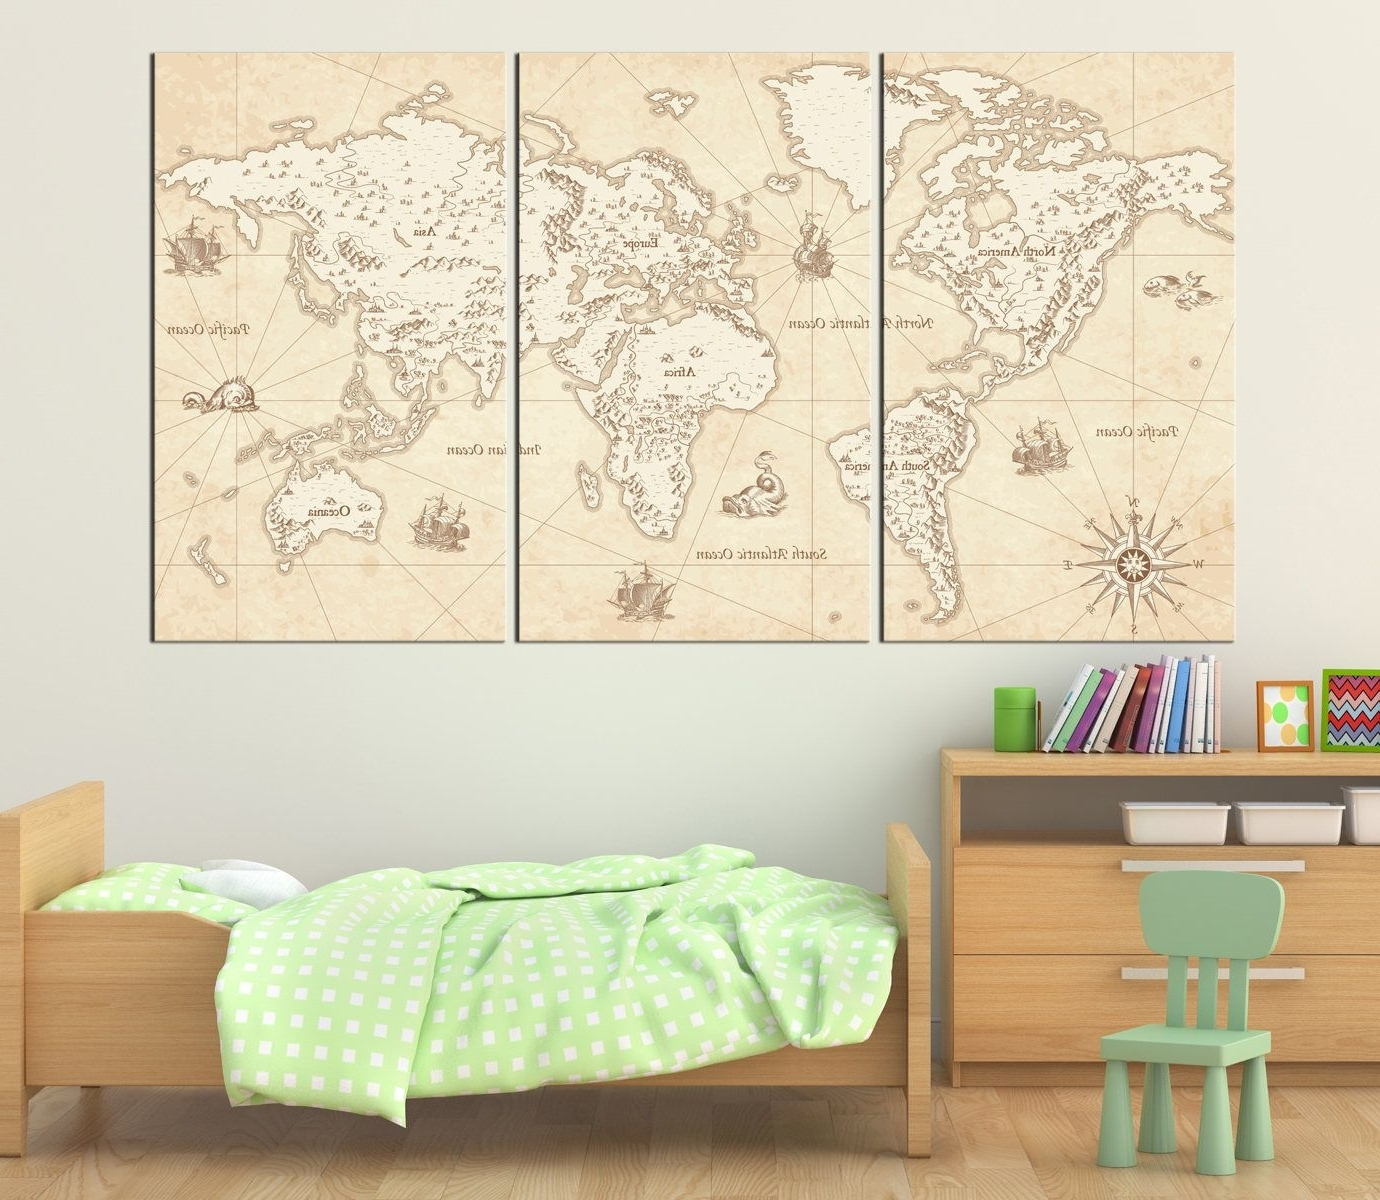 Vintage Illustrated World Map With Decorative Elements Canvas Print For Most Popular Map Wall Art Prints (View 11 of 15)